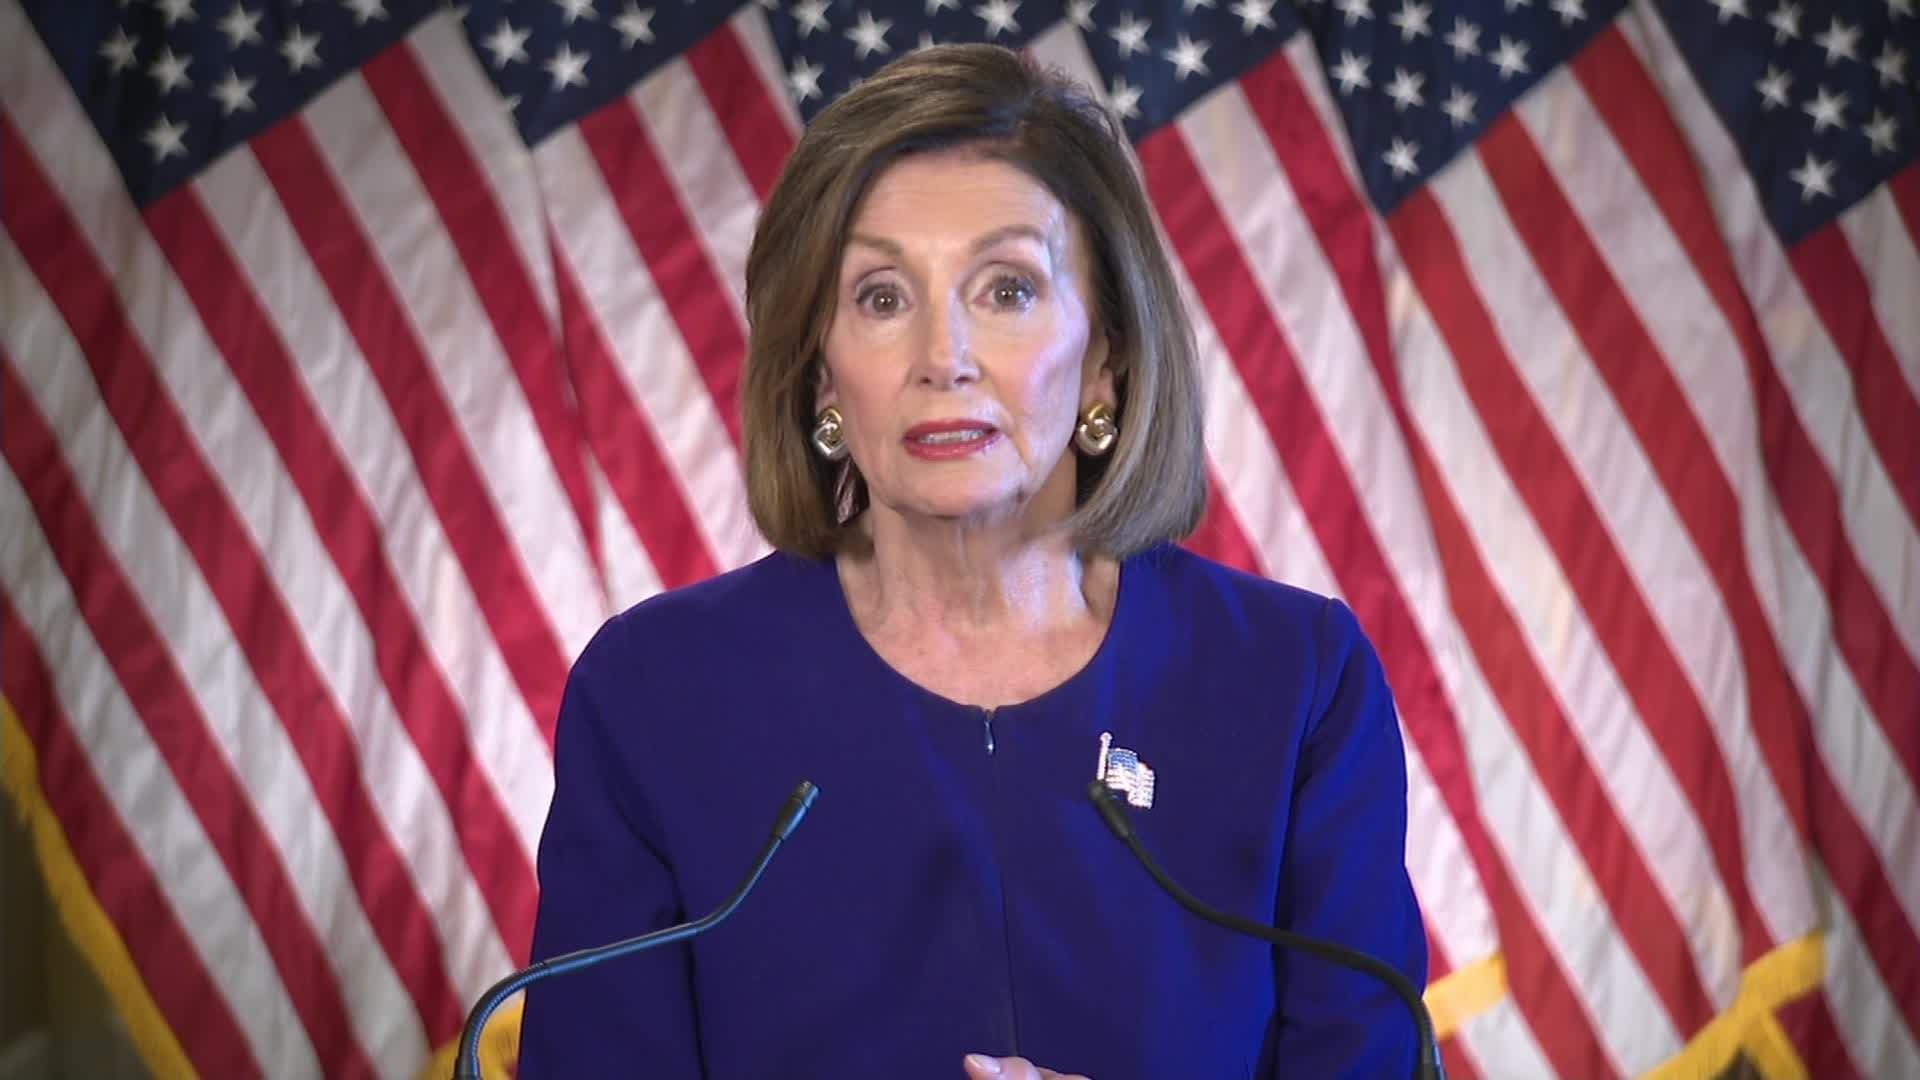 KLIF Morning News: Pelosi Pushes Impeachment, and What's Wrong with the Cowboys?